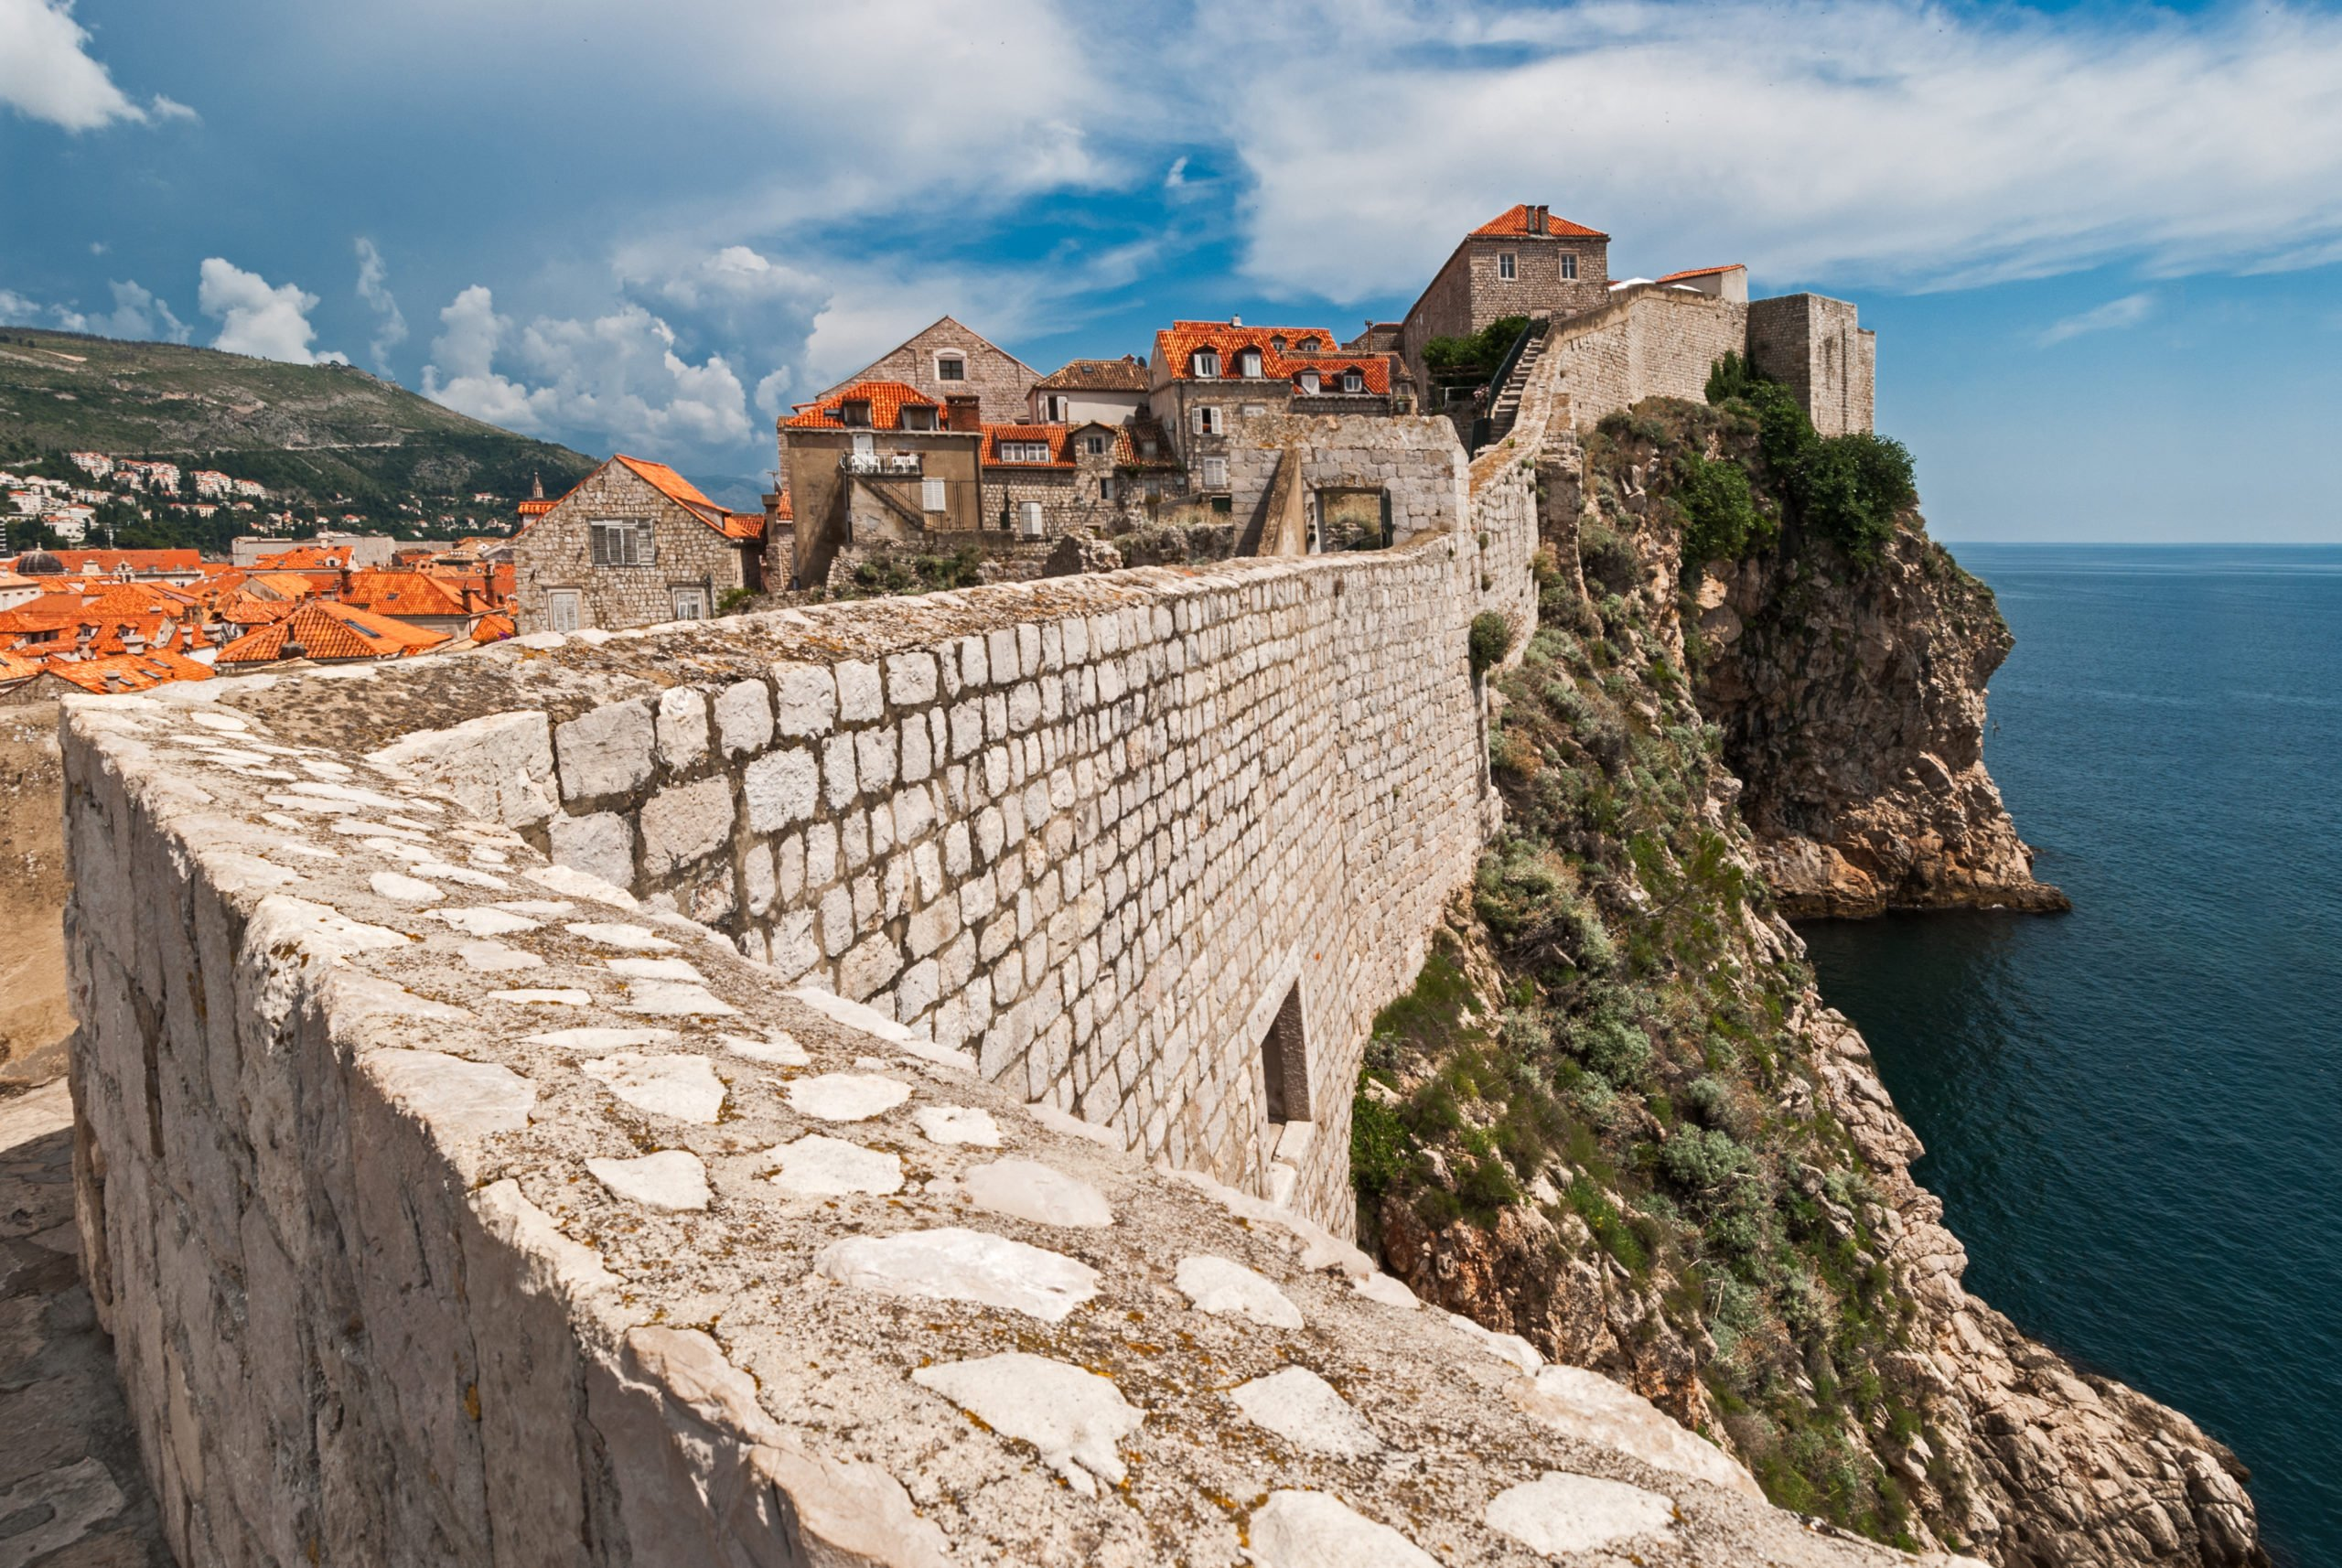 Visit The Astonishing City Walls Of Dubrovnik On The Game Of Thrones And Dubrovnik Shore Tour